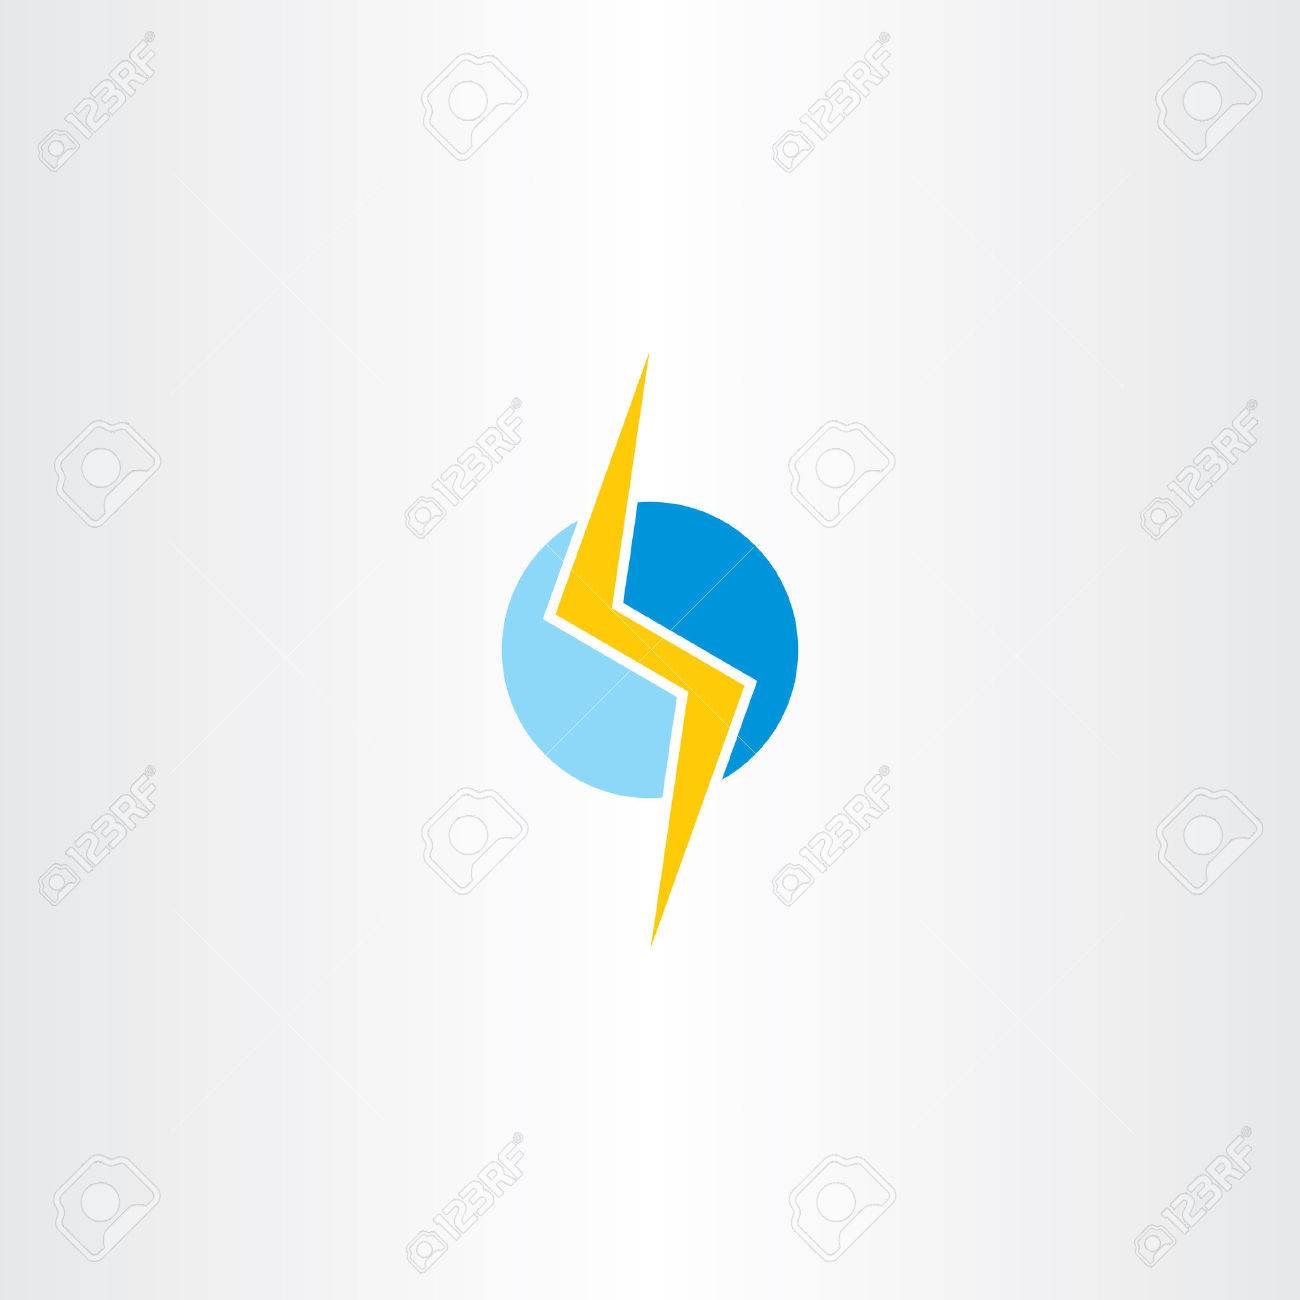 Lighting Bolt Vector Yellow Blue Logo Symbol Design Stock